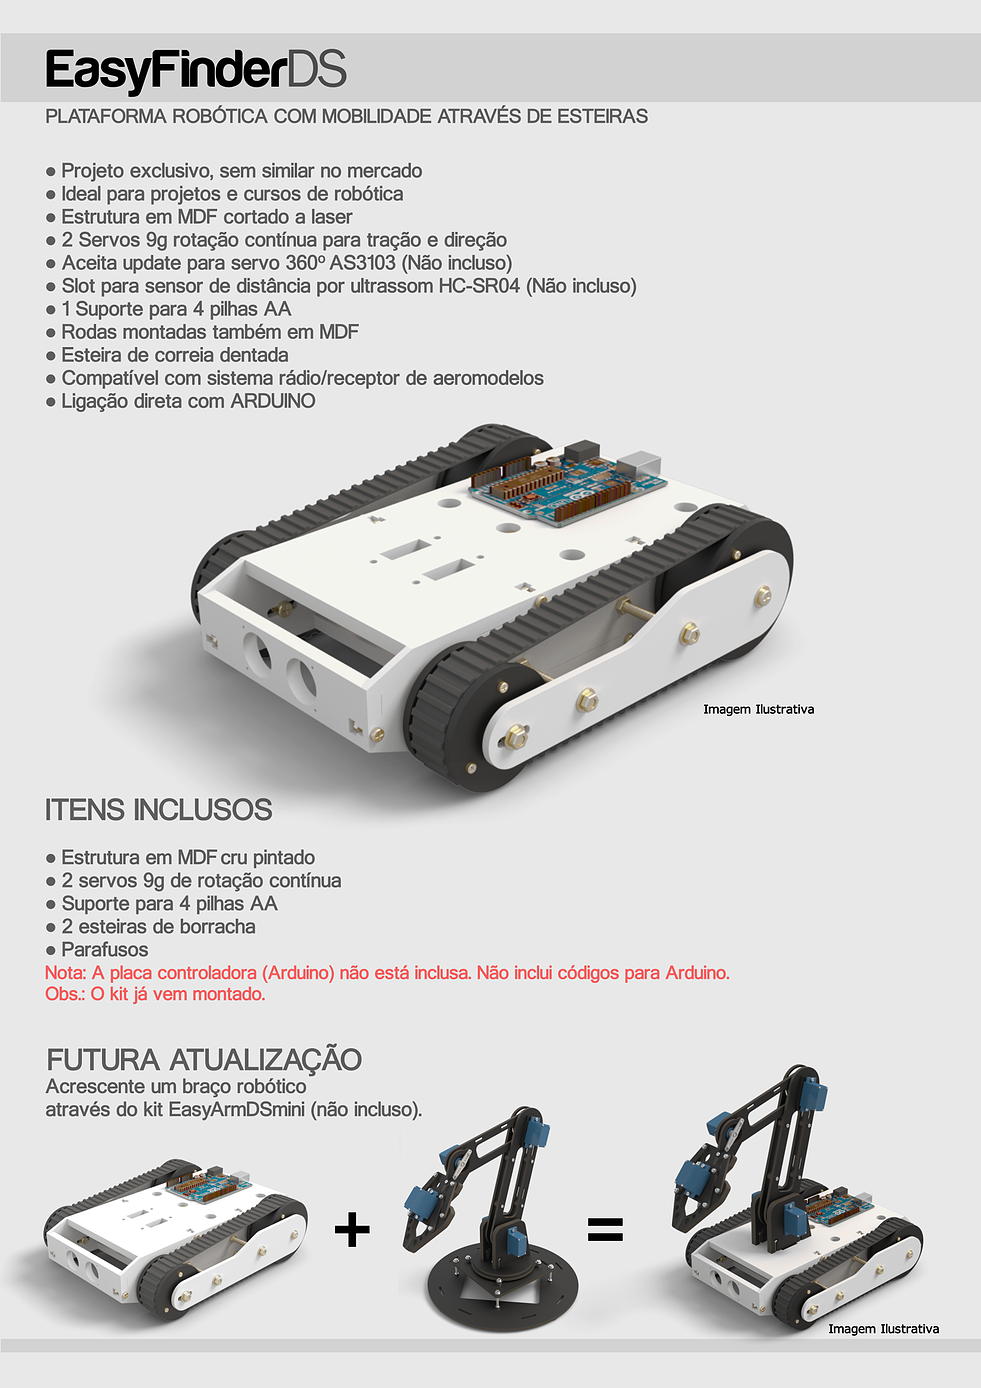 Pin by Julio Afonso on Toys | Pinterest | Arduino, Robot and Tech